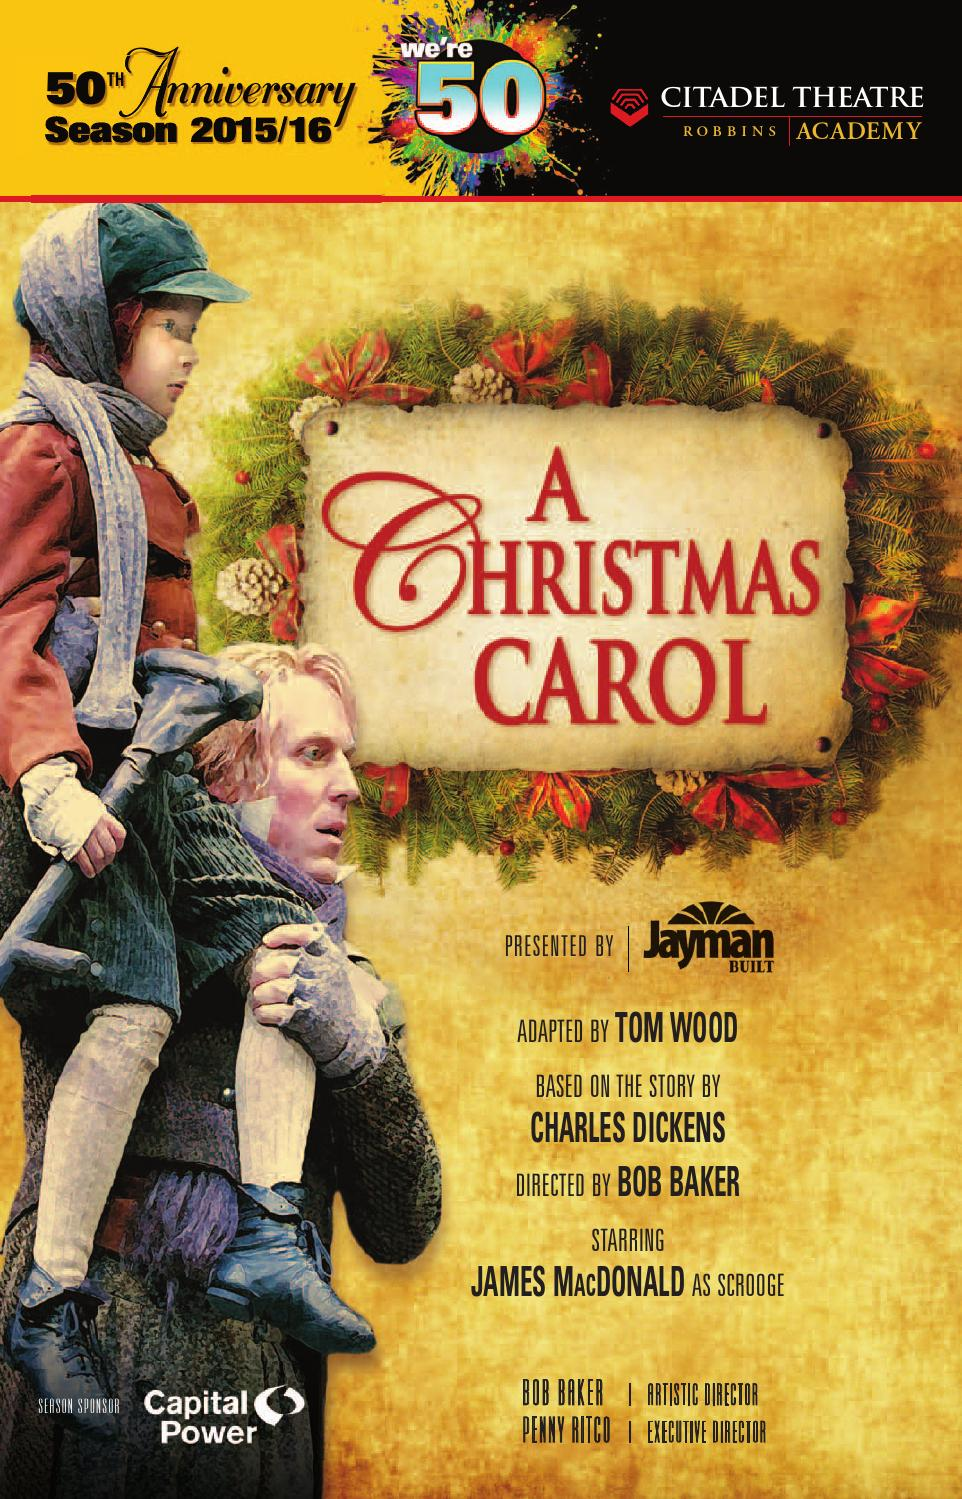 Citadel Theatre playbill - A Christmas Carol 2015 by Suggitt